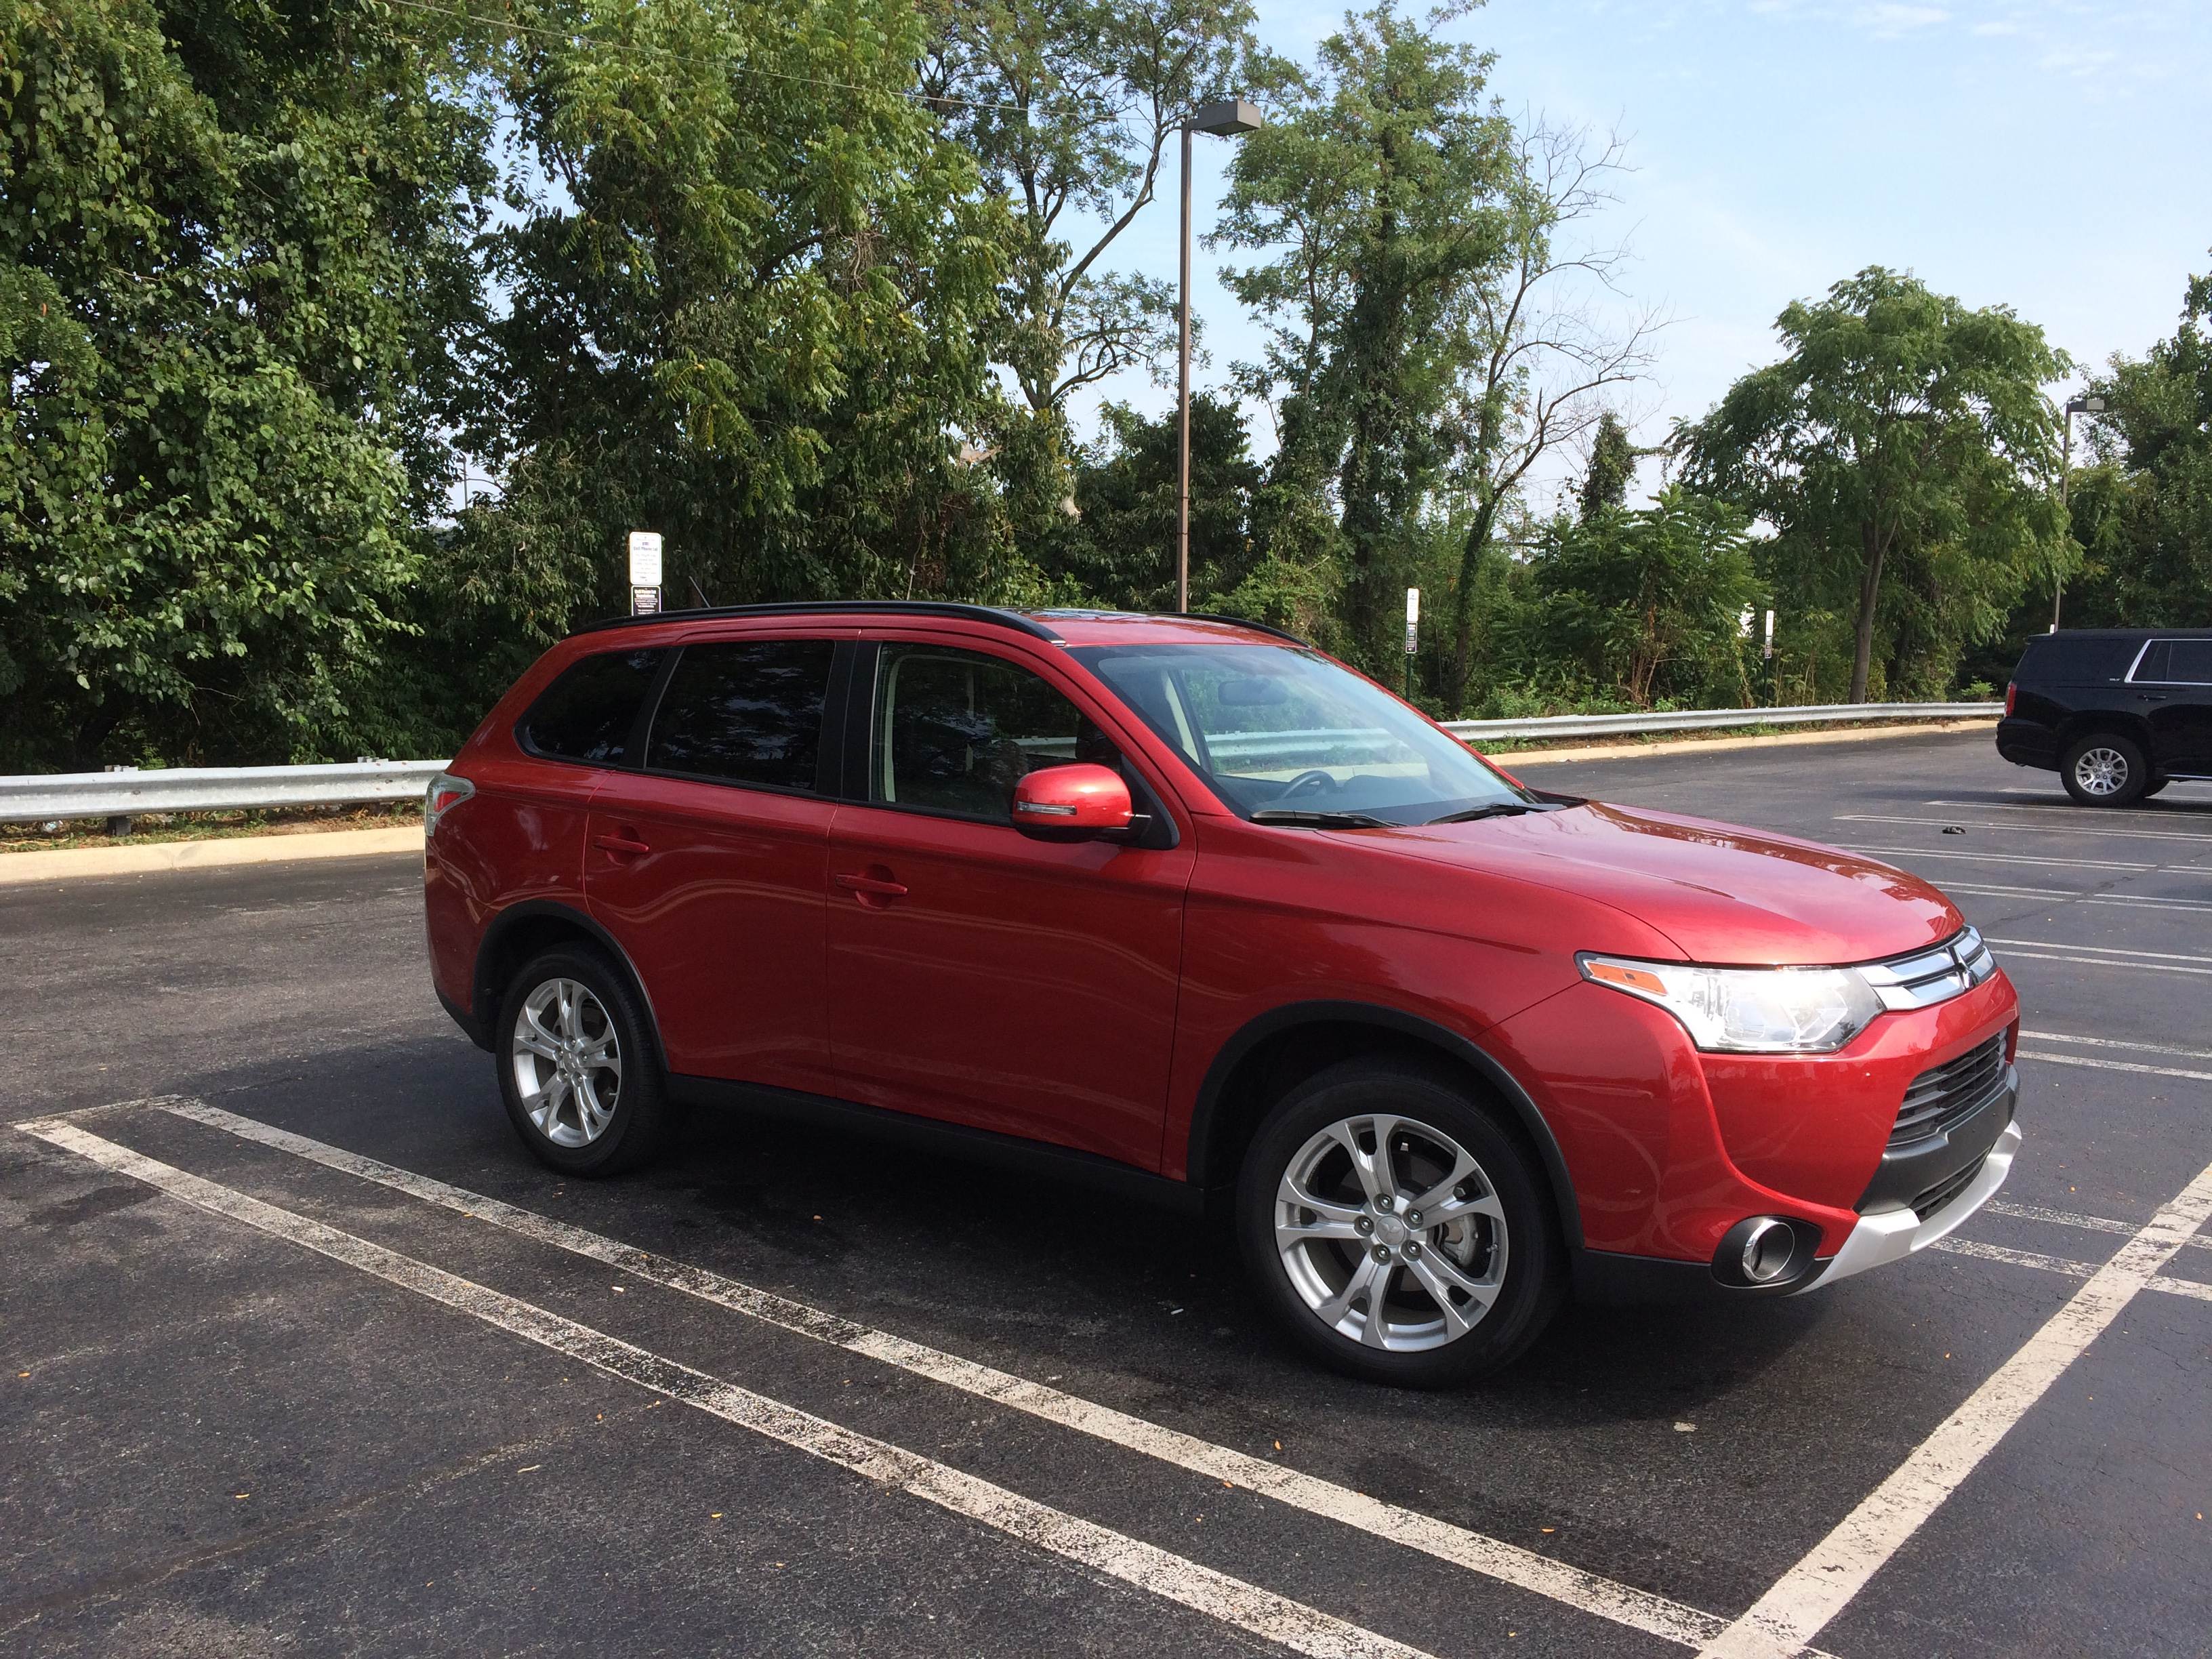 2015 Mitsubishi Outlander SE: An affordable seven-passenger crossover